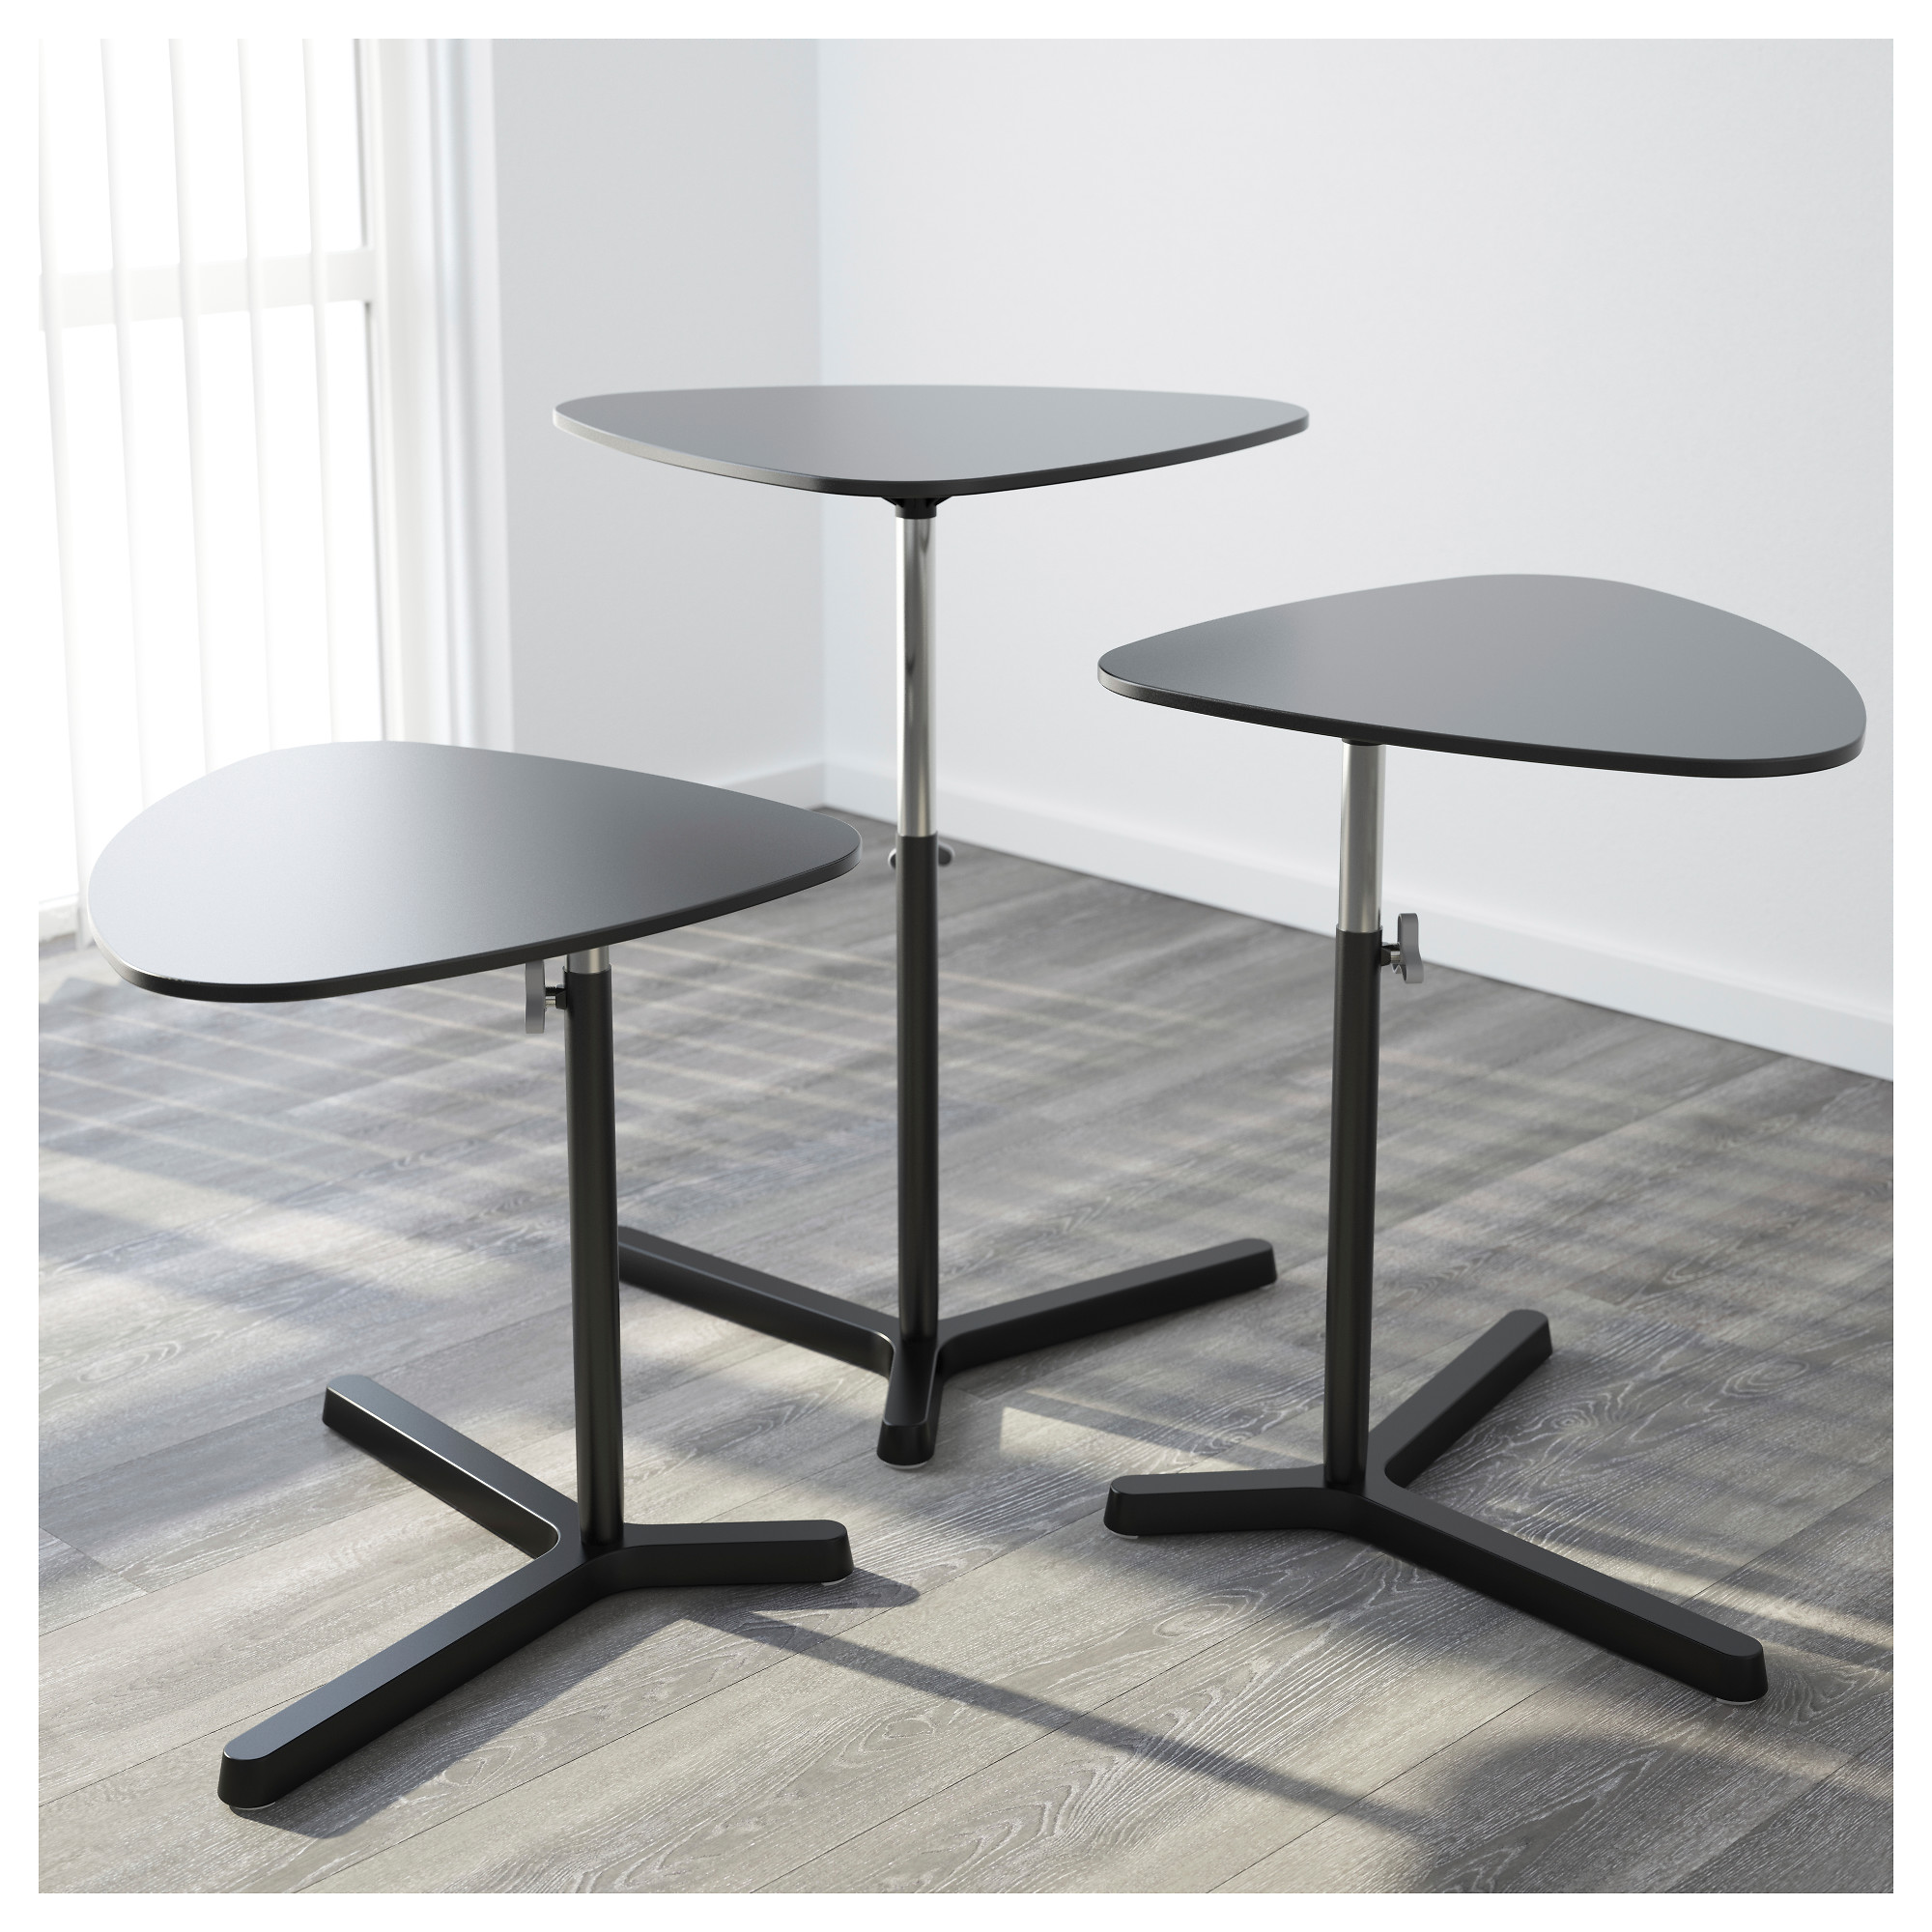 Furniture and Home Furnishings Ikea laptop table